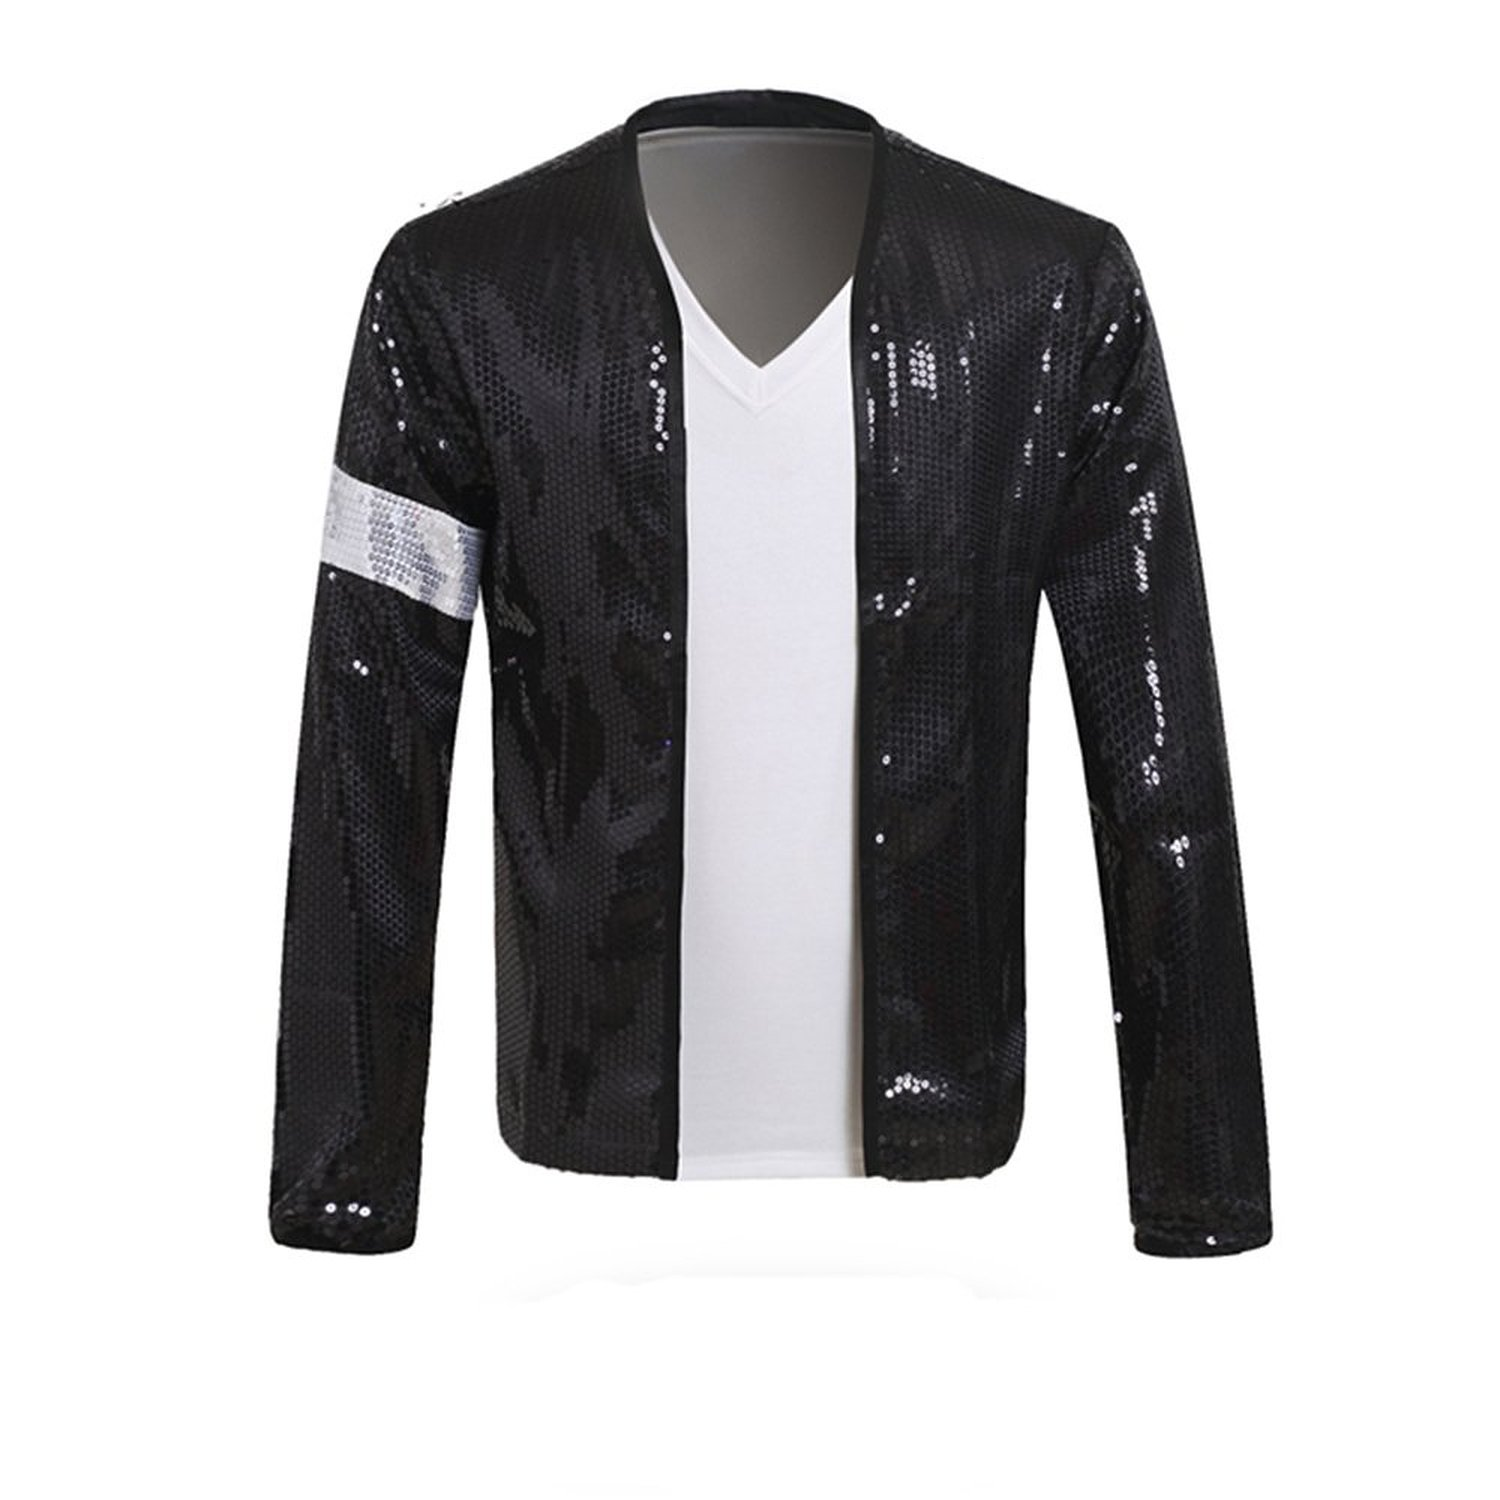 Xfang MJ Billie Jean Jacket Costume with Glove (L-Height:175cm-175cm)